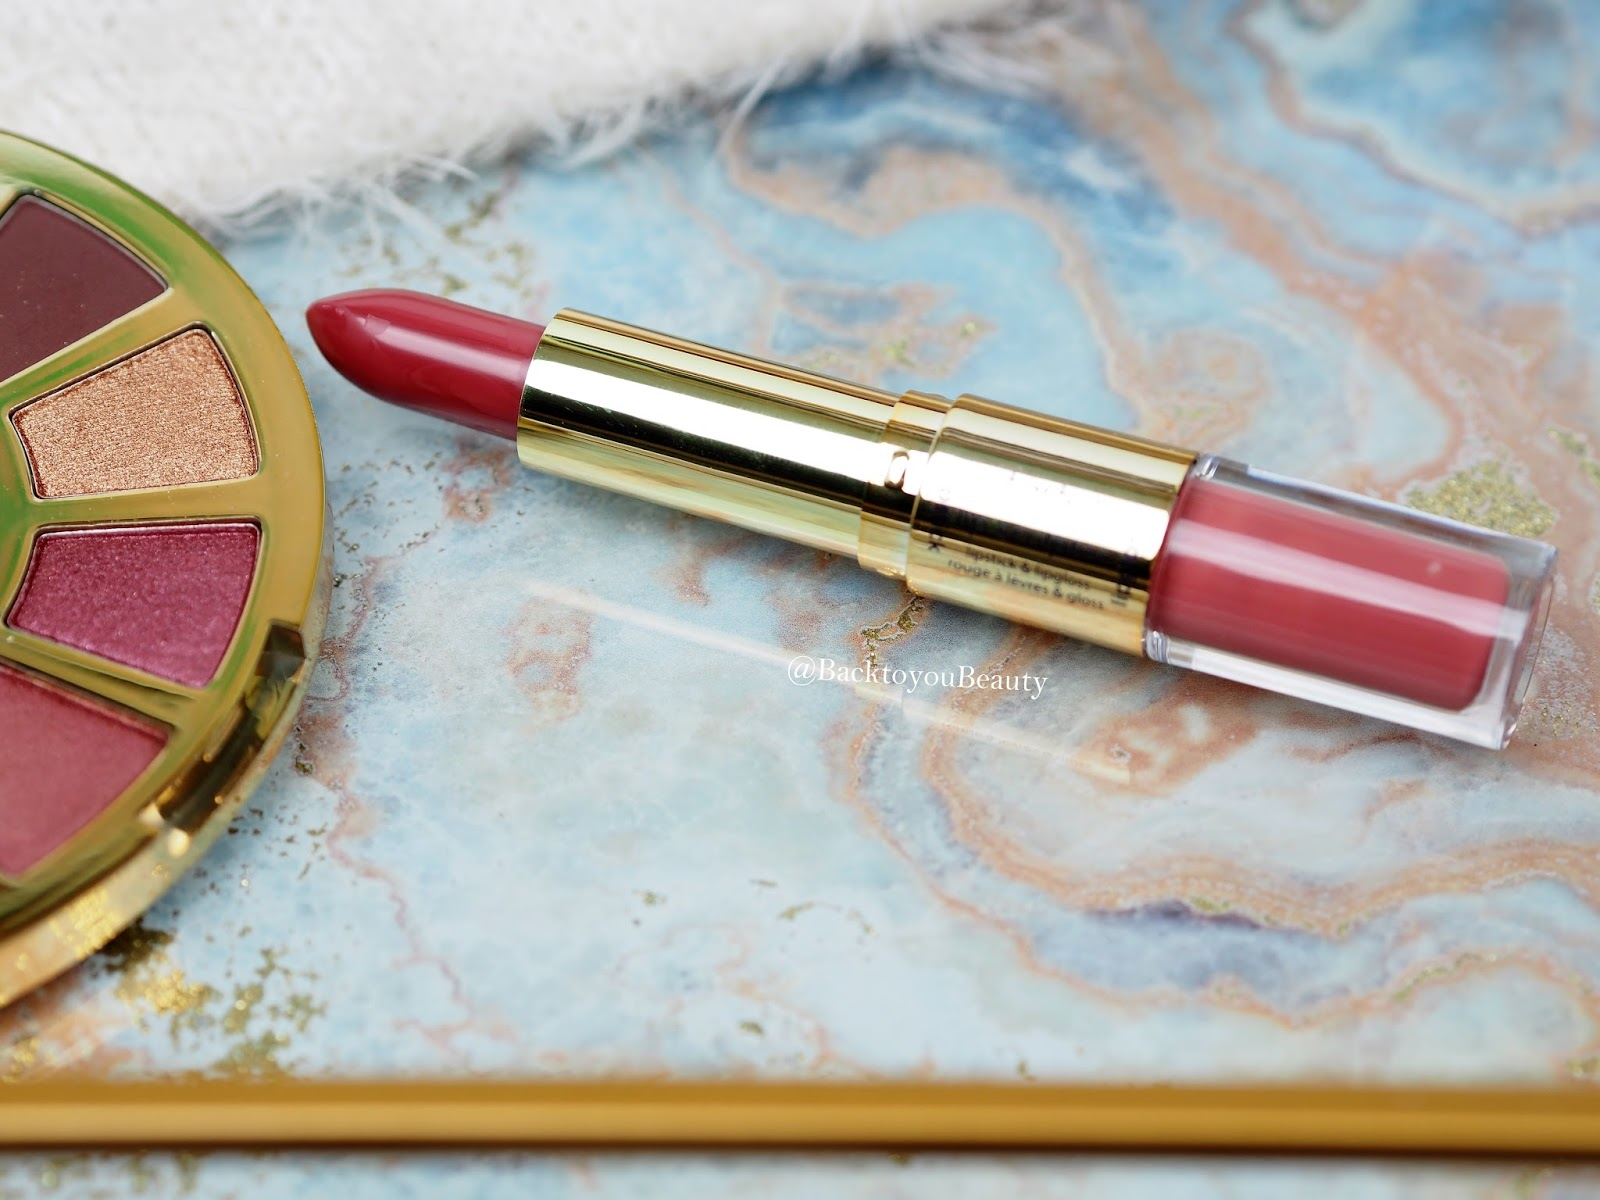 Tarte Lip Sculptor Lipstick and Lipgloss in Sass